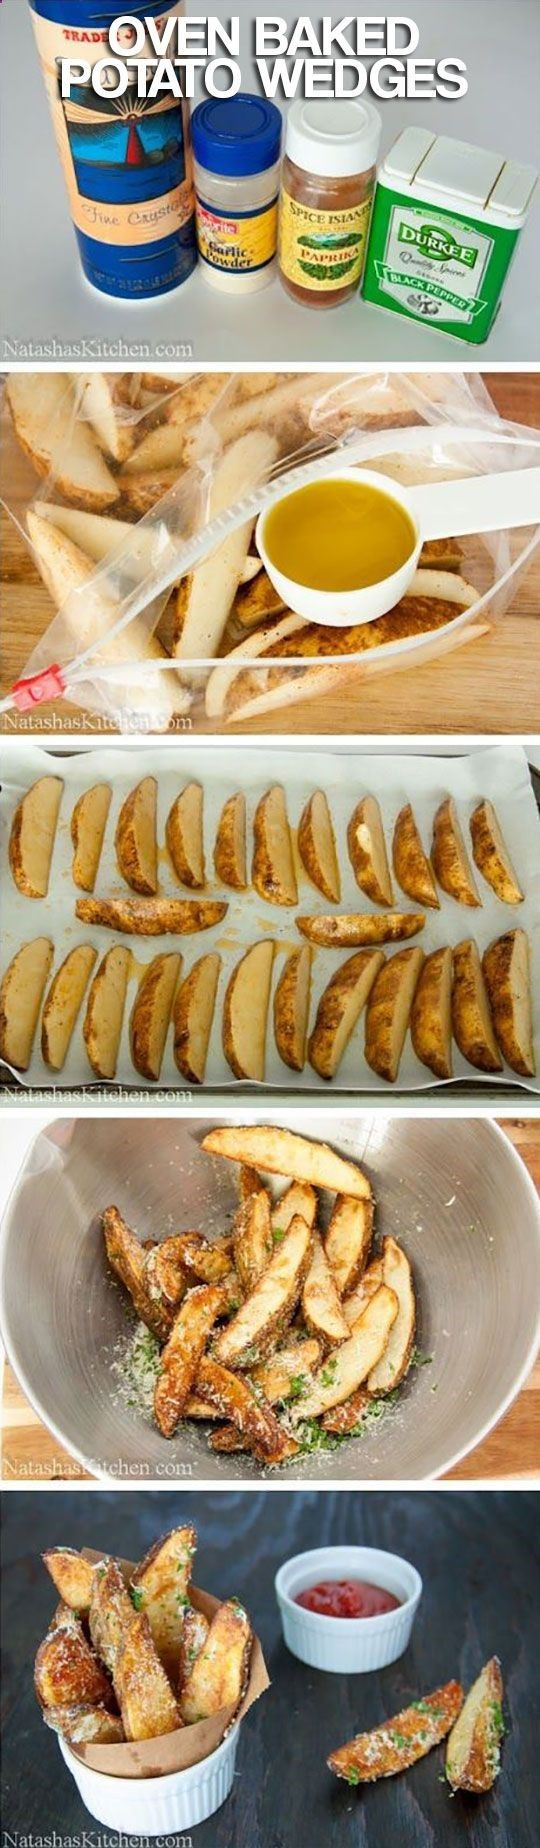 Oven baked potato wedges to die for | Yummy foods & drinks | Pinterest